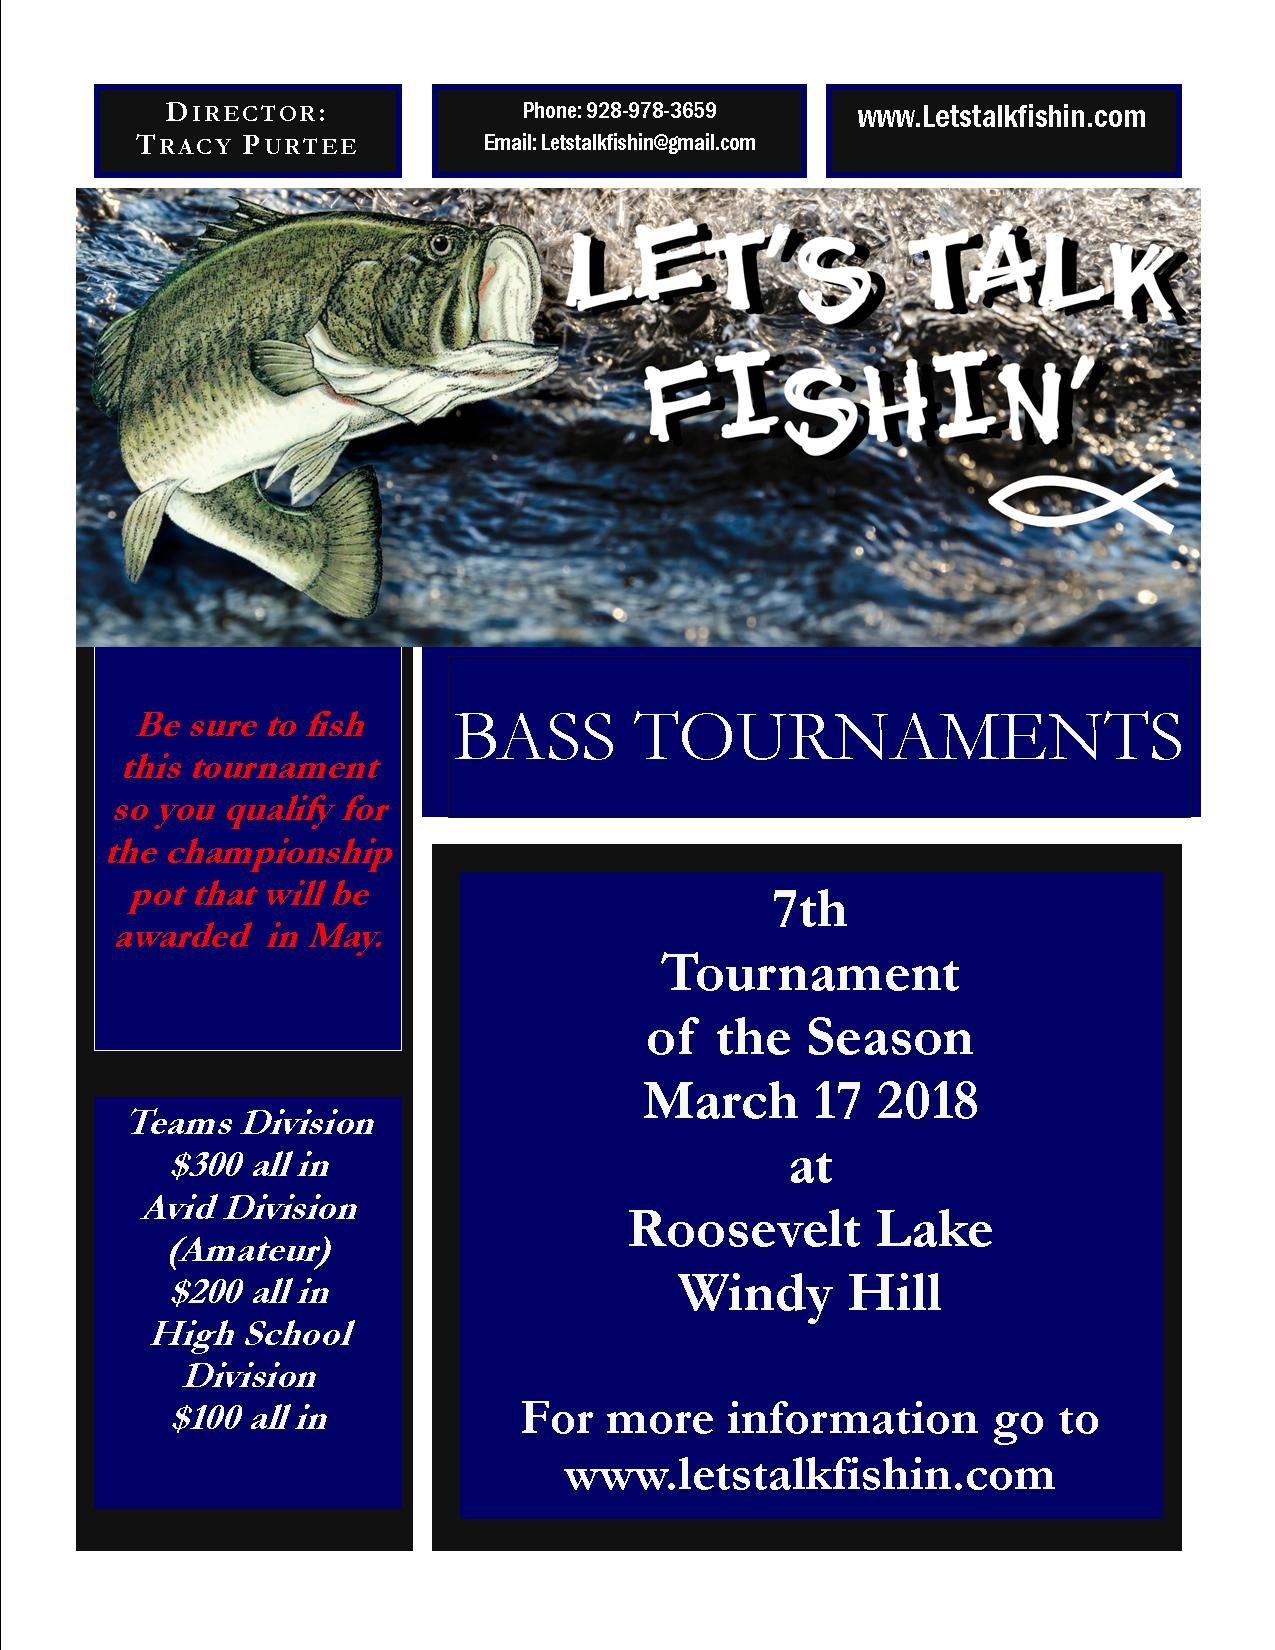 Click image for larger version  Name:7th Tournament.jpg Views:2414 Size:283.6 KB ID:96826